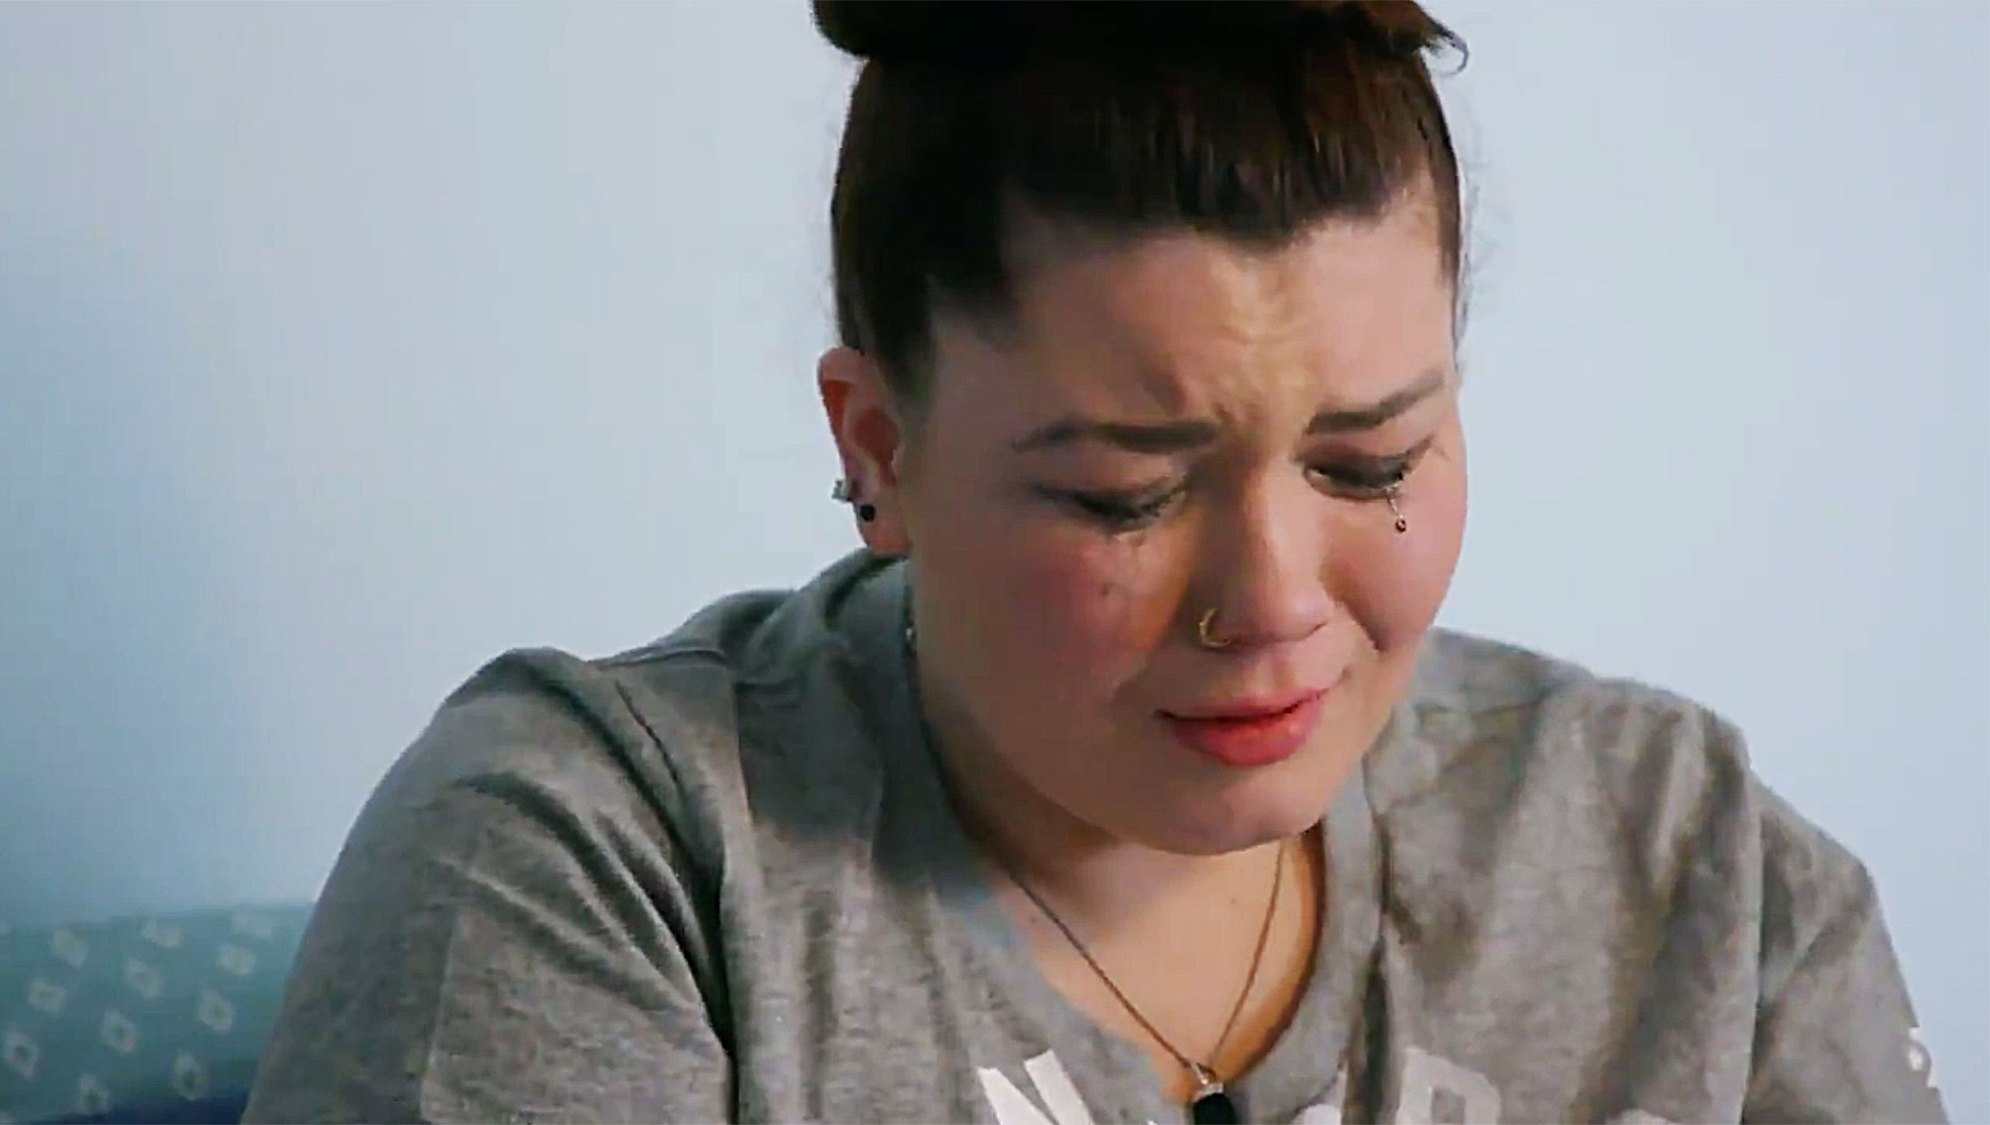 Amber-Portwood-Reveals-Suicidal-Thoughts-On-Tmog-Season-Finale